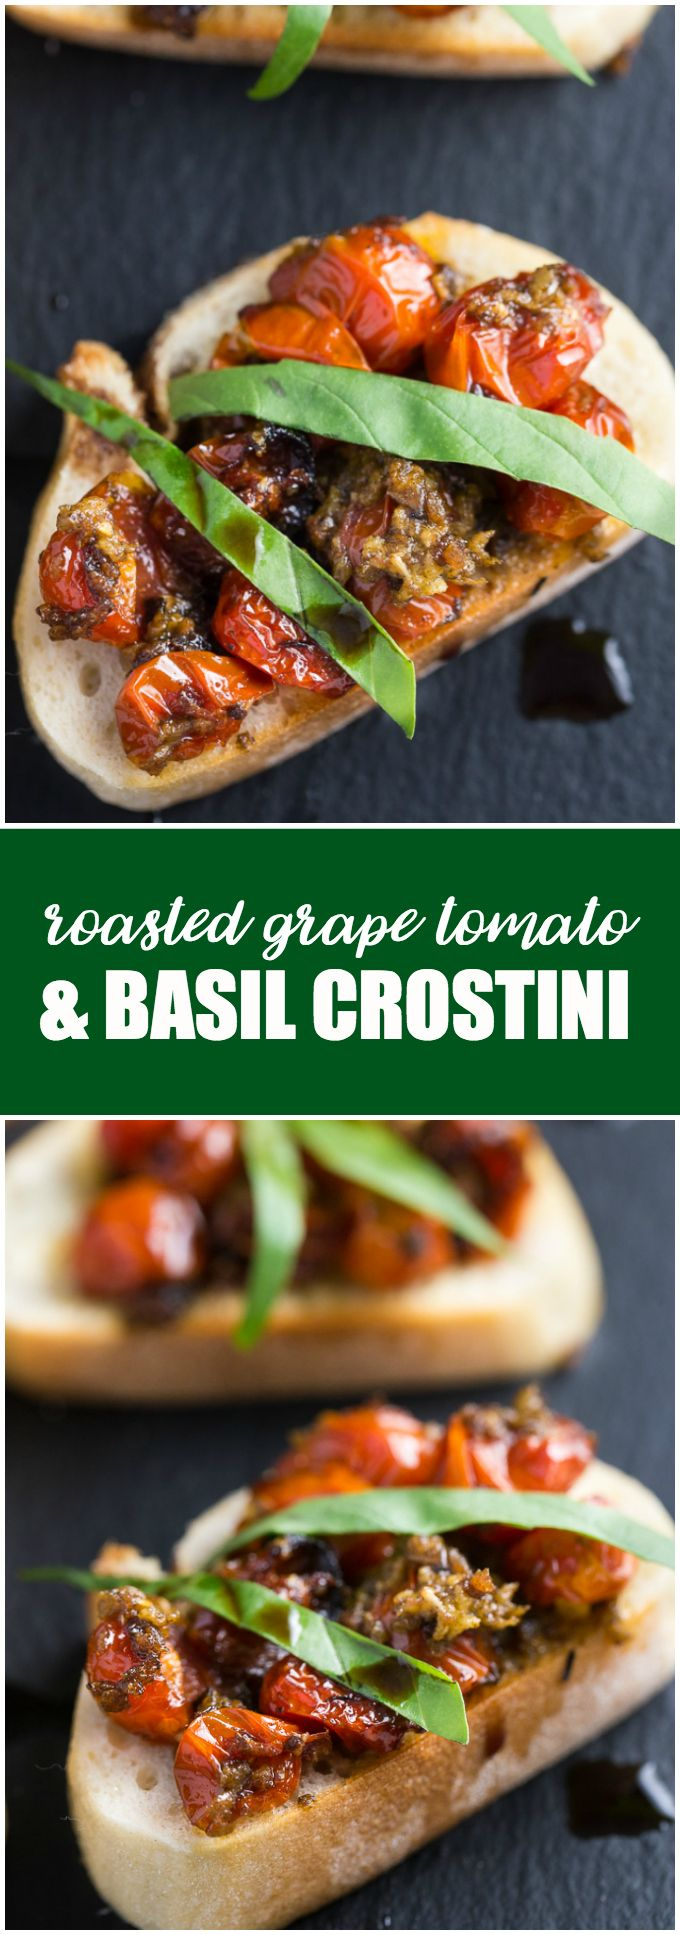 Roasted Grape Tomato and Basil Crostini - A toasted baguette is topped with grape tomatoes roasted in garlic and olive oil and finished off with ribbons of fresh basil and a drizzle of balsamic vinegar.